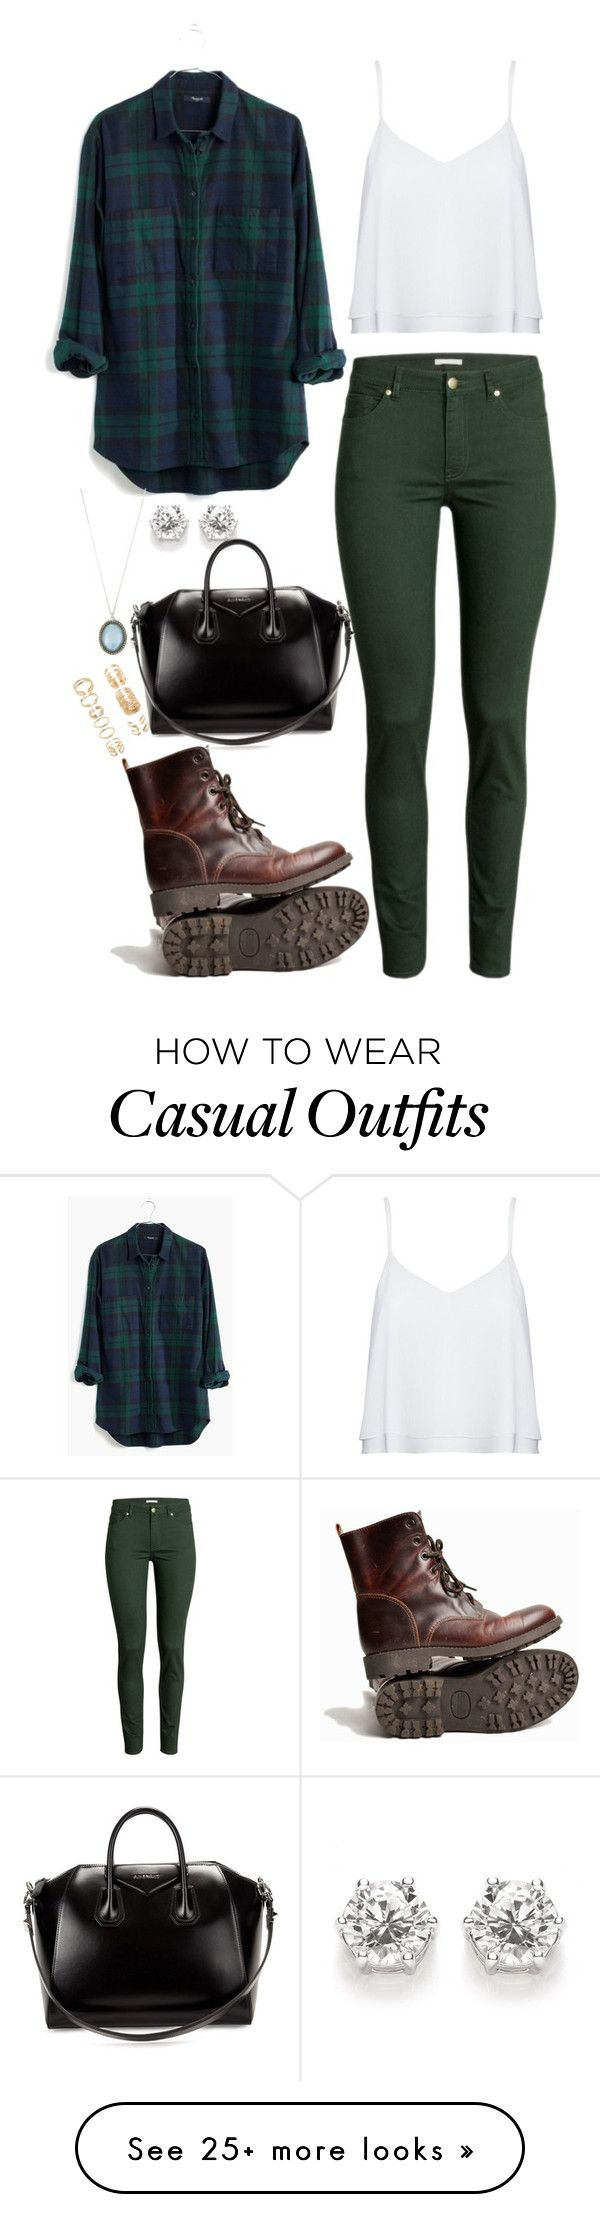 """Casual"" by chap15906248 on Polyvore featuring Madewell, Alice + Olivia, H&M, Givenchy, Armenta and Forever 21"